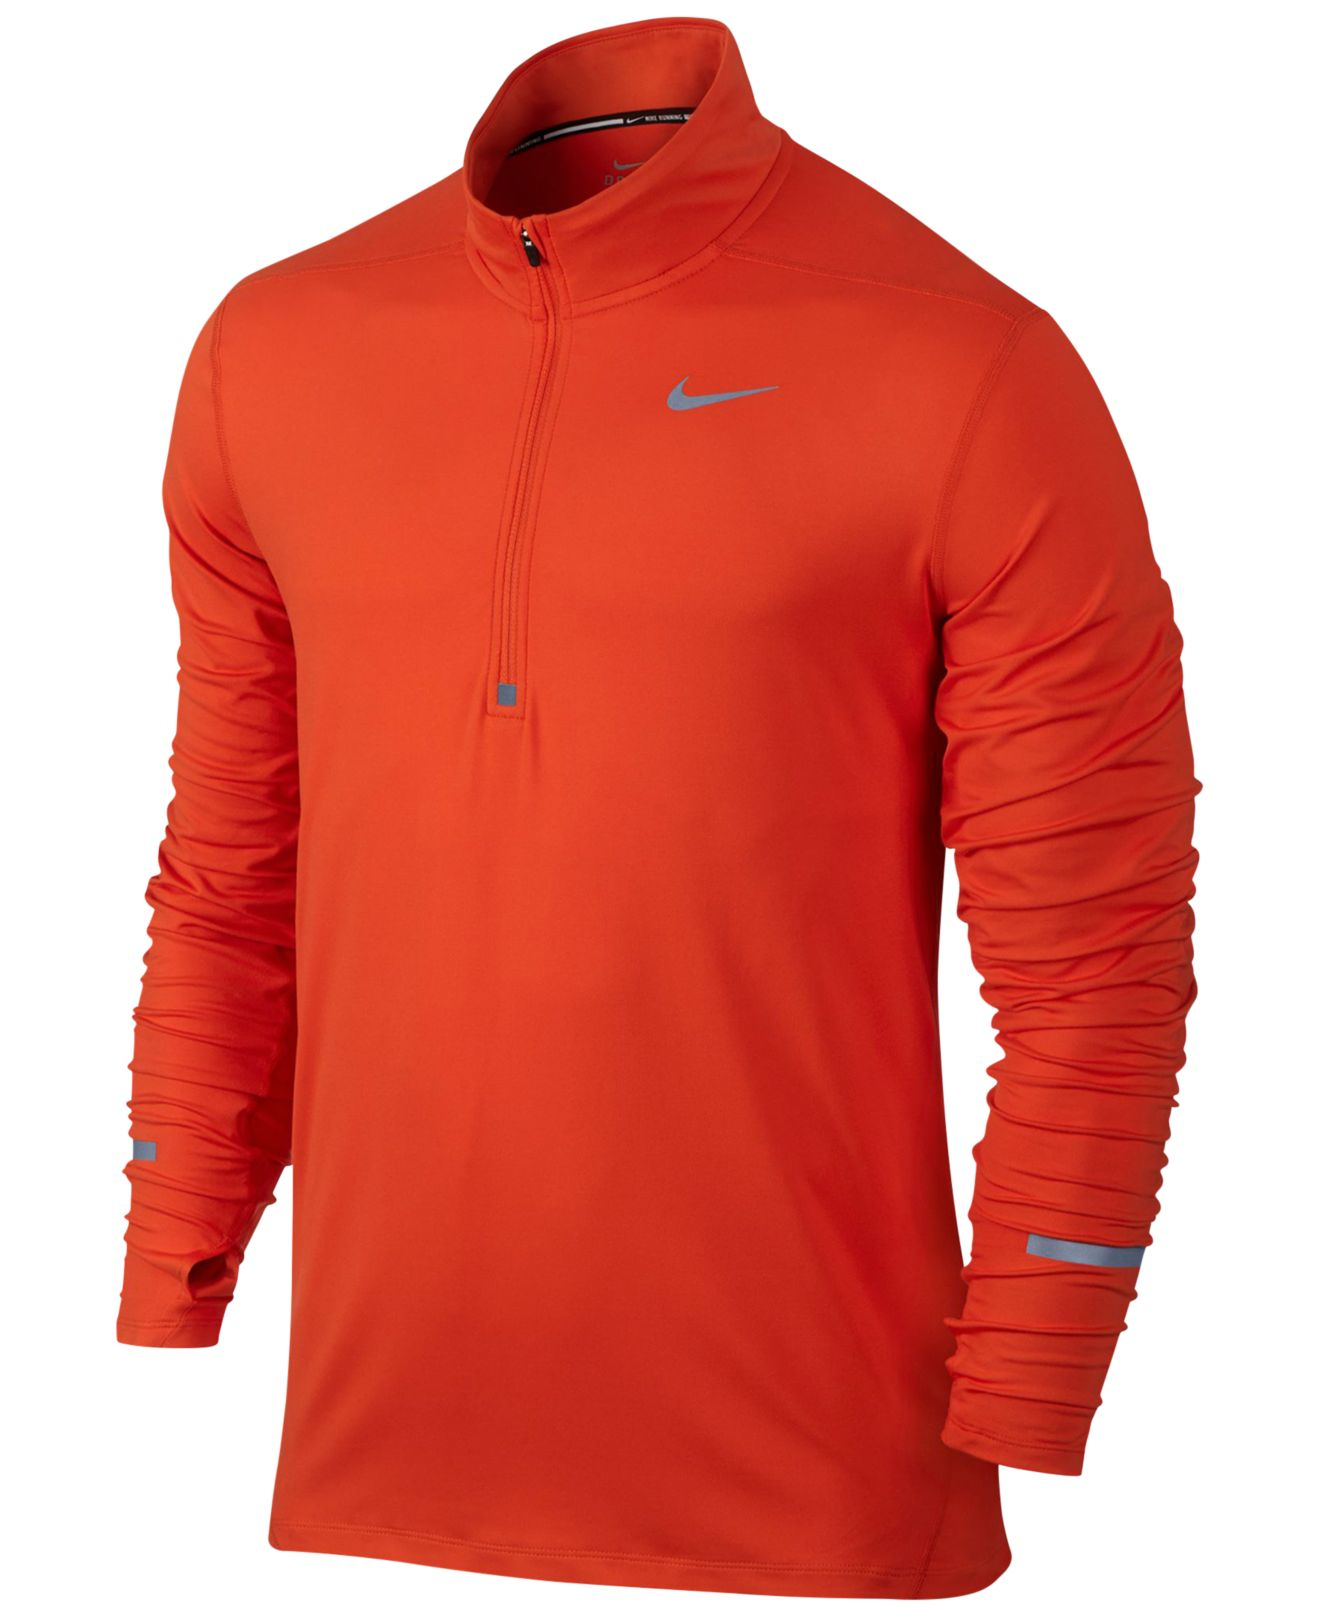 8bc56c075360b Nike Men s Element Dri-fit Half-zip Running Shirt in Orange for Men ...